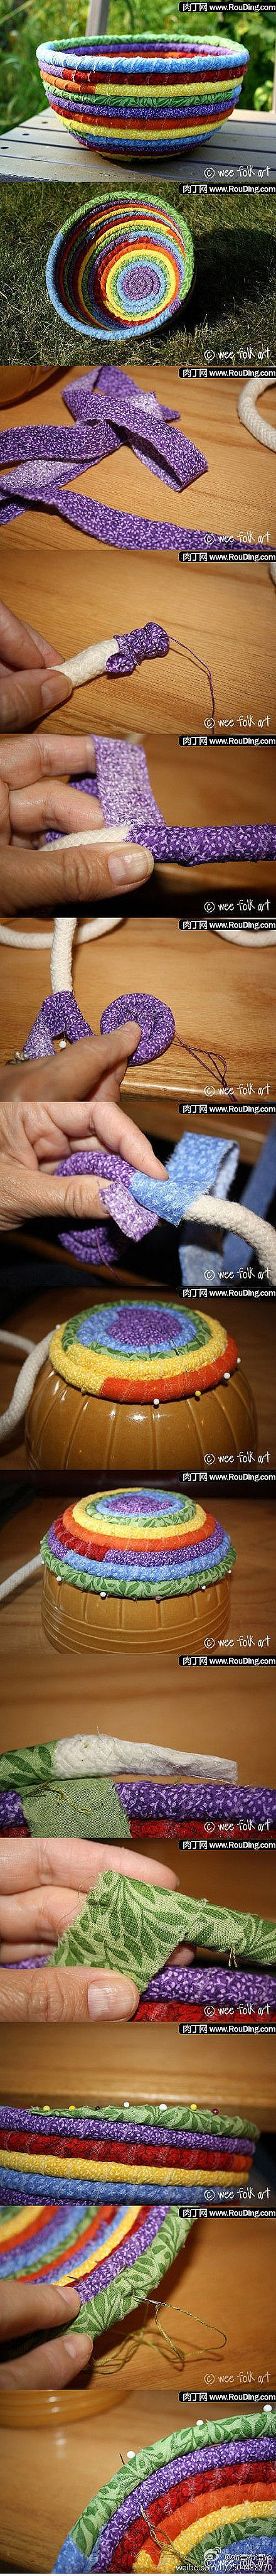 String/rope and fabric to create colorful balls